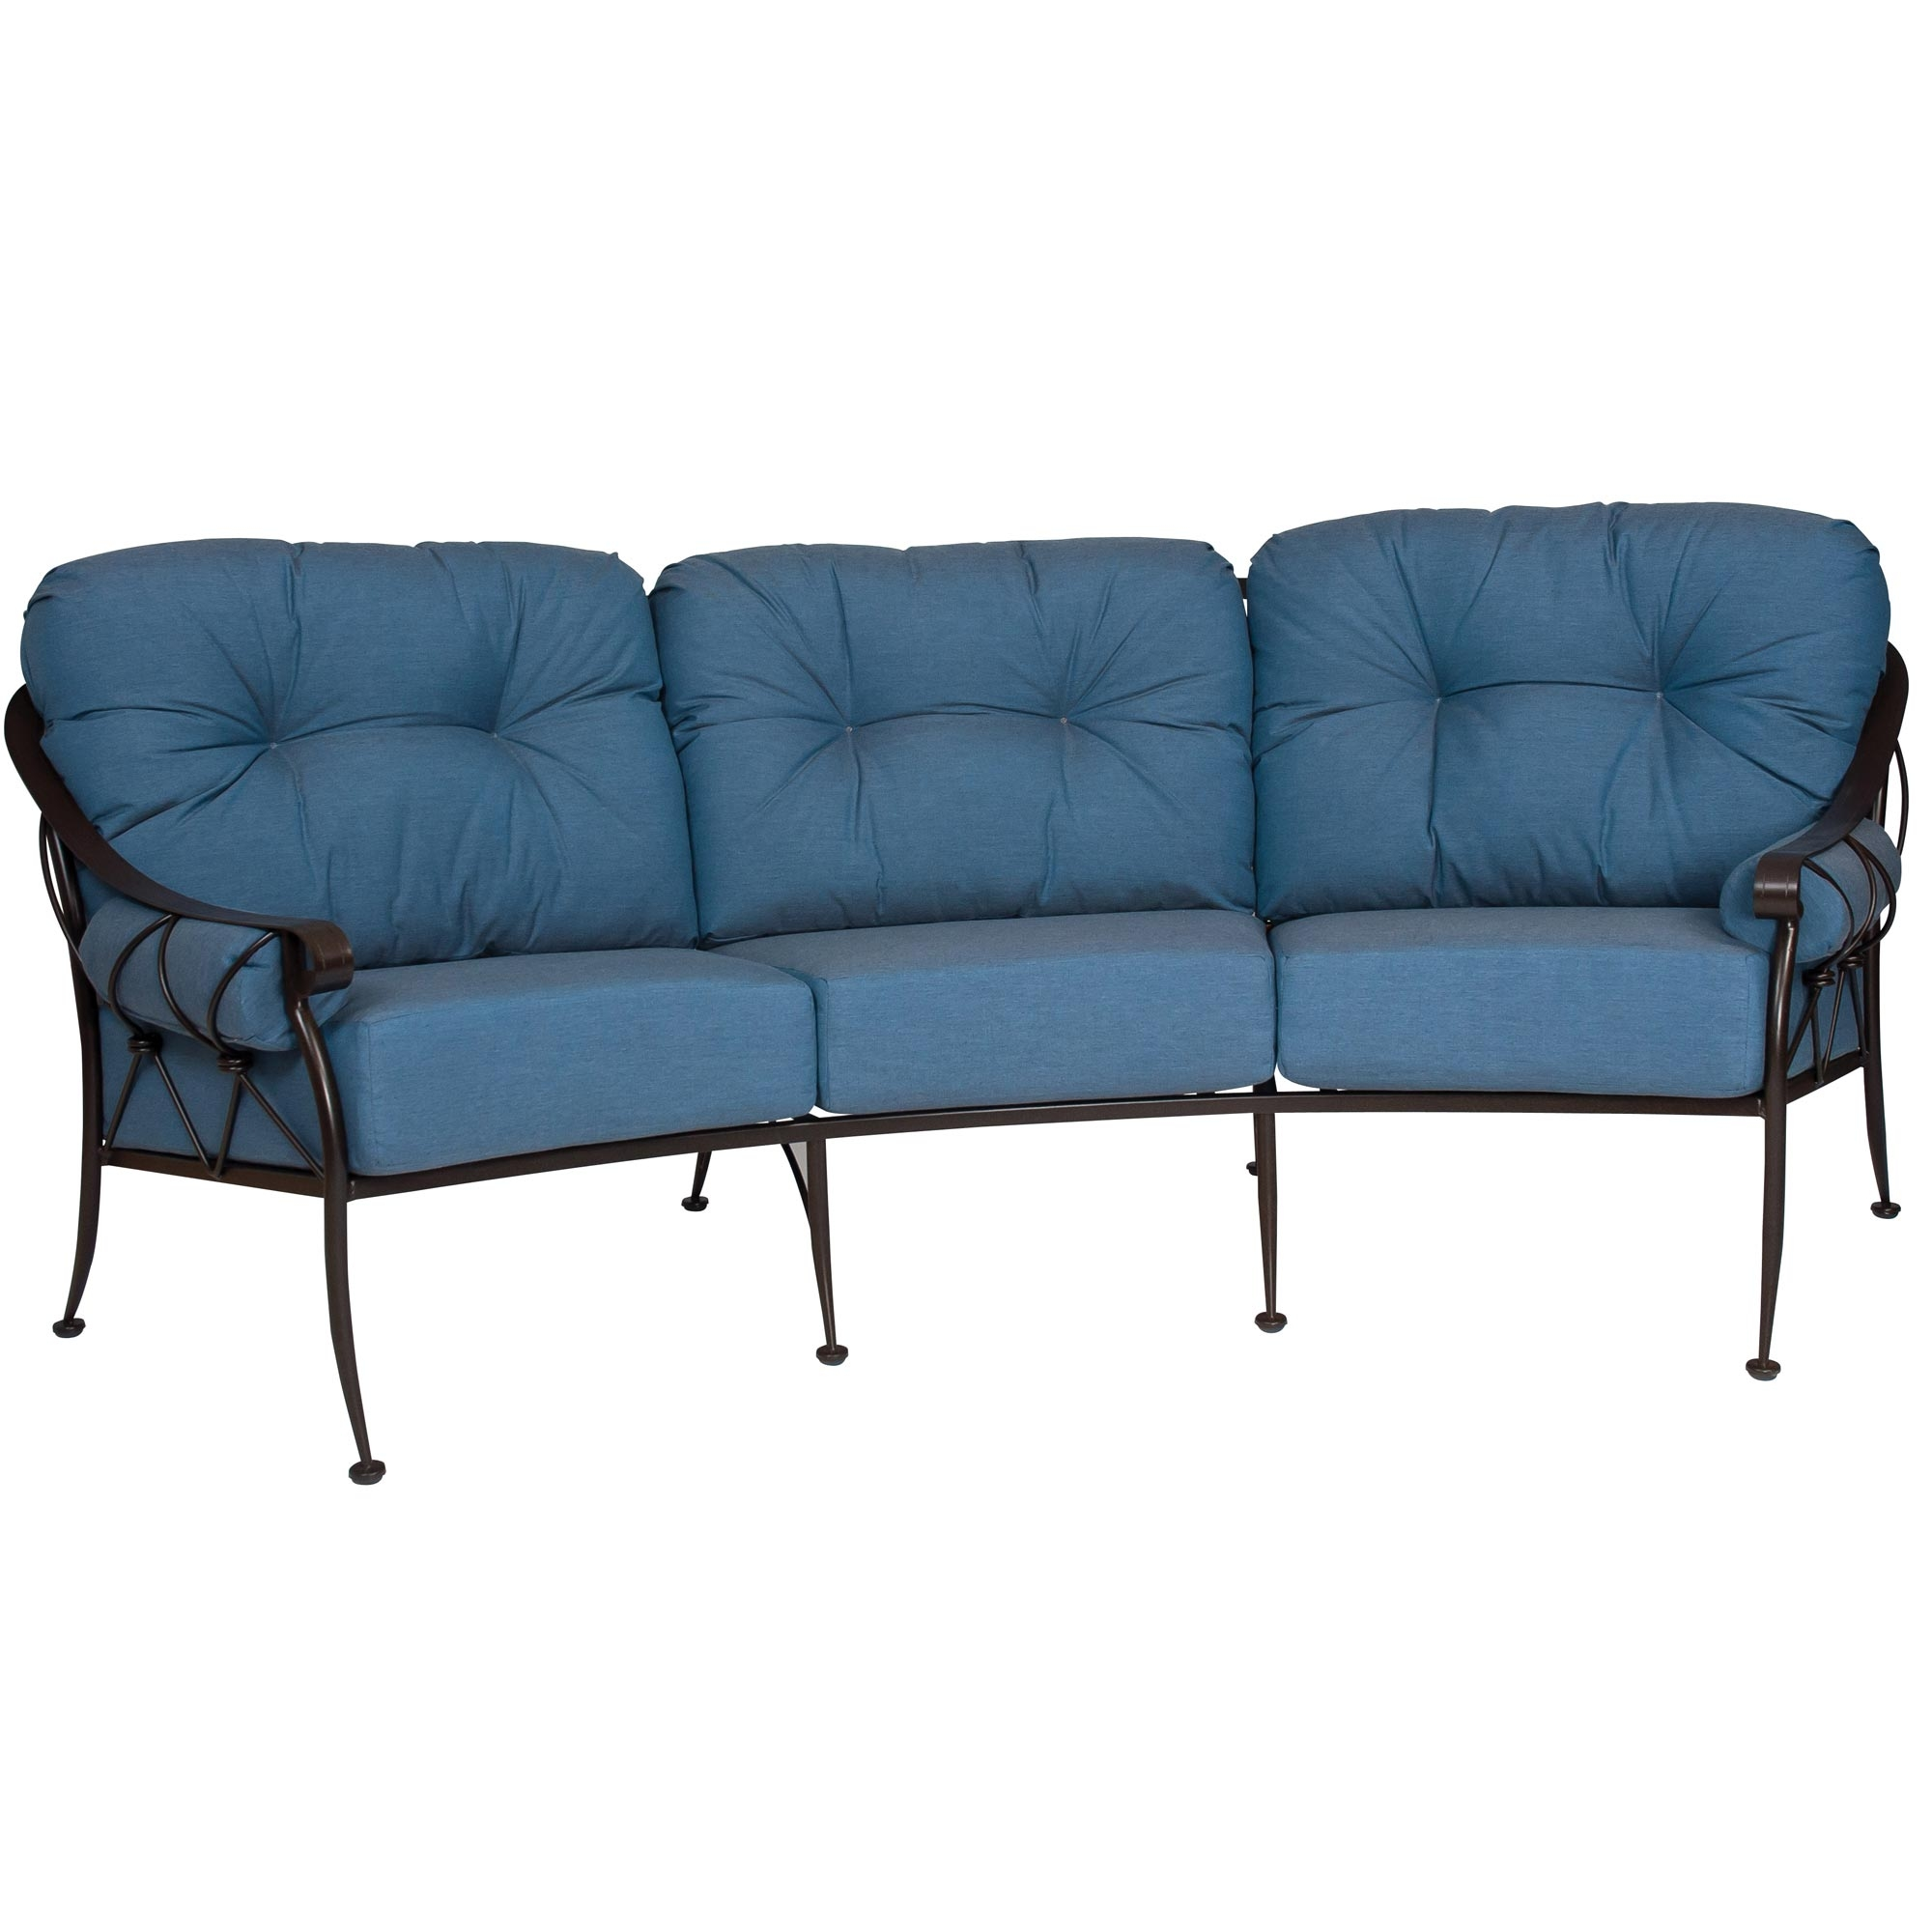 Pictured is the Derby Crescent Sofa from Woodard Outdoor